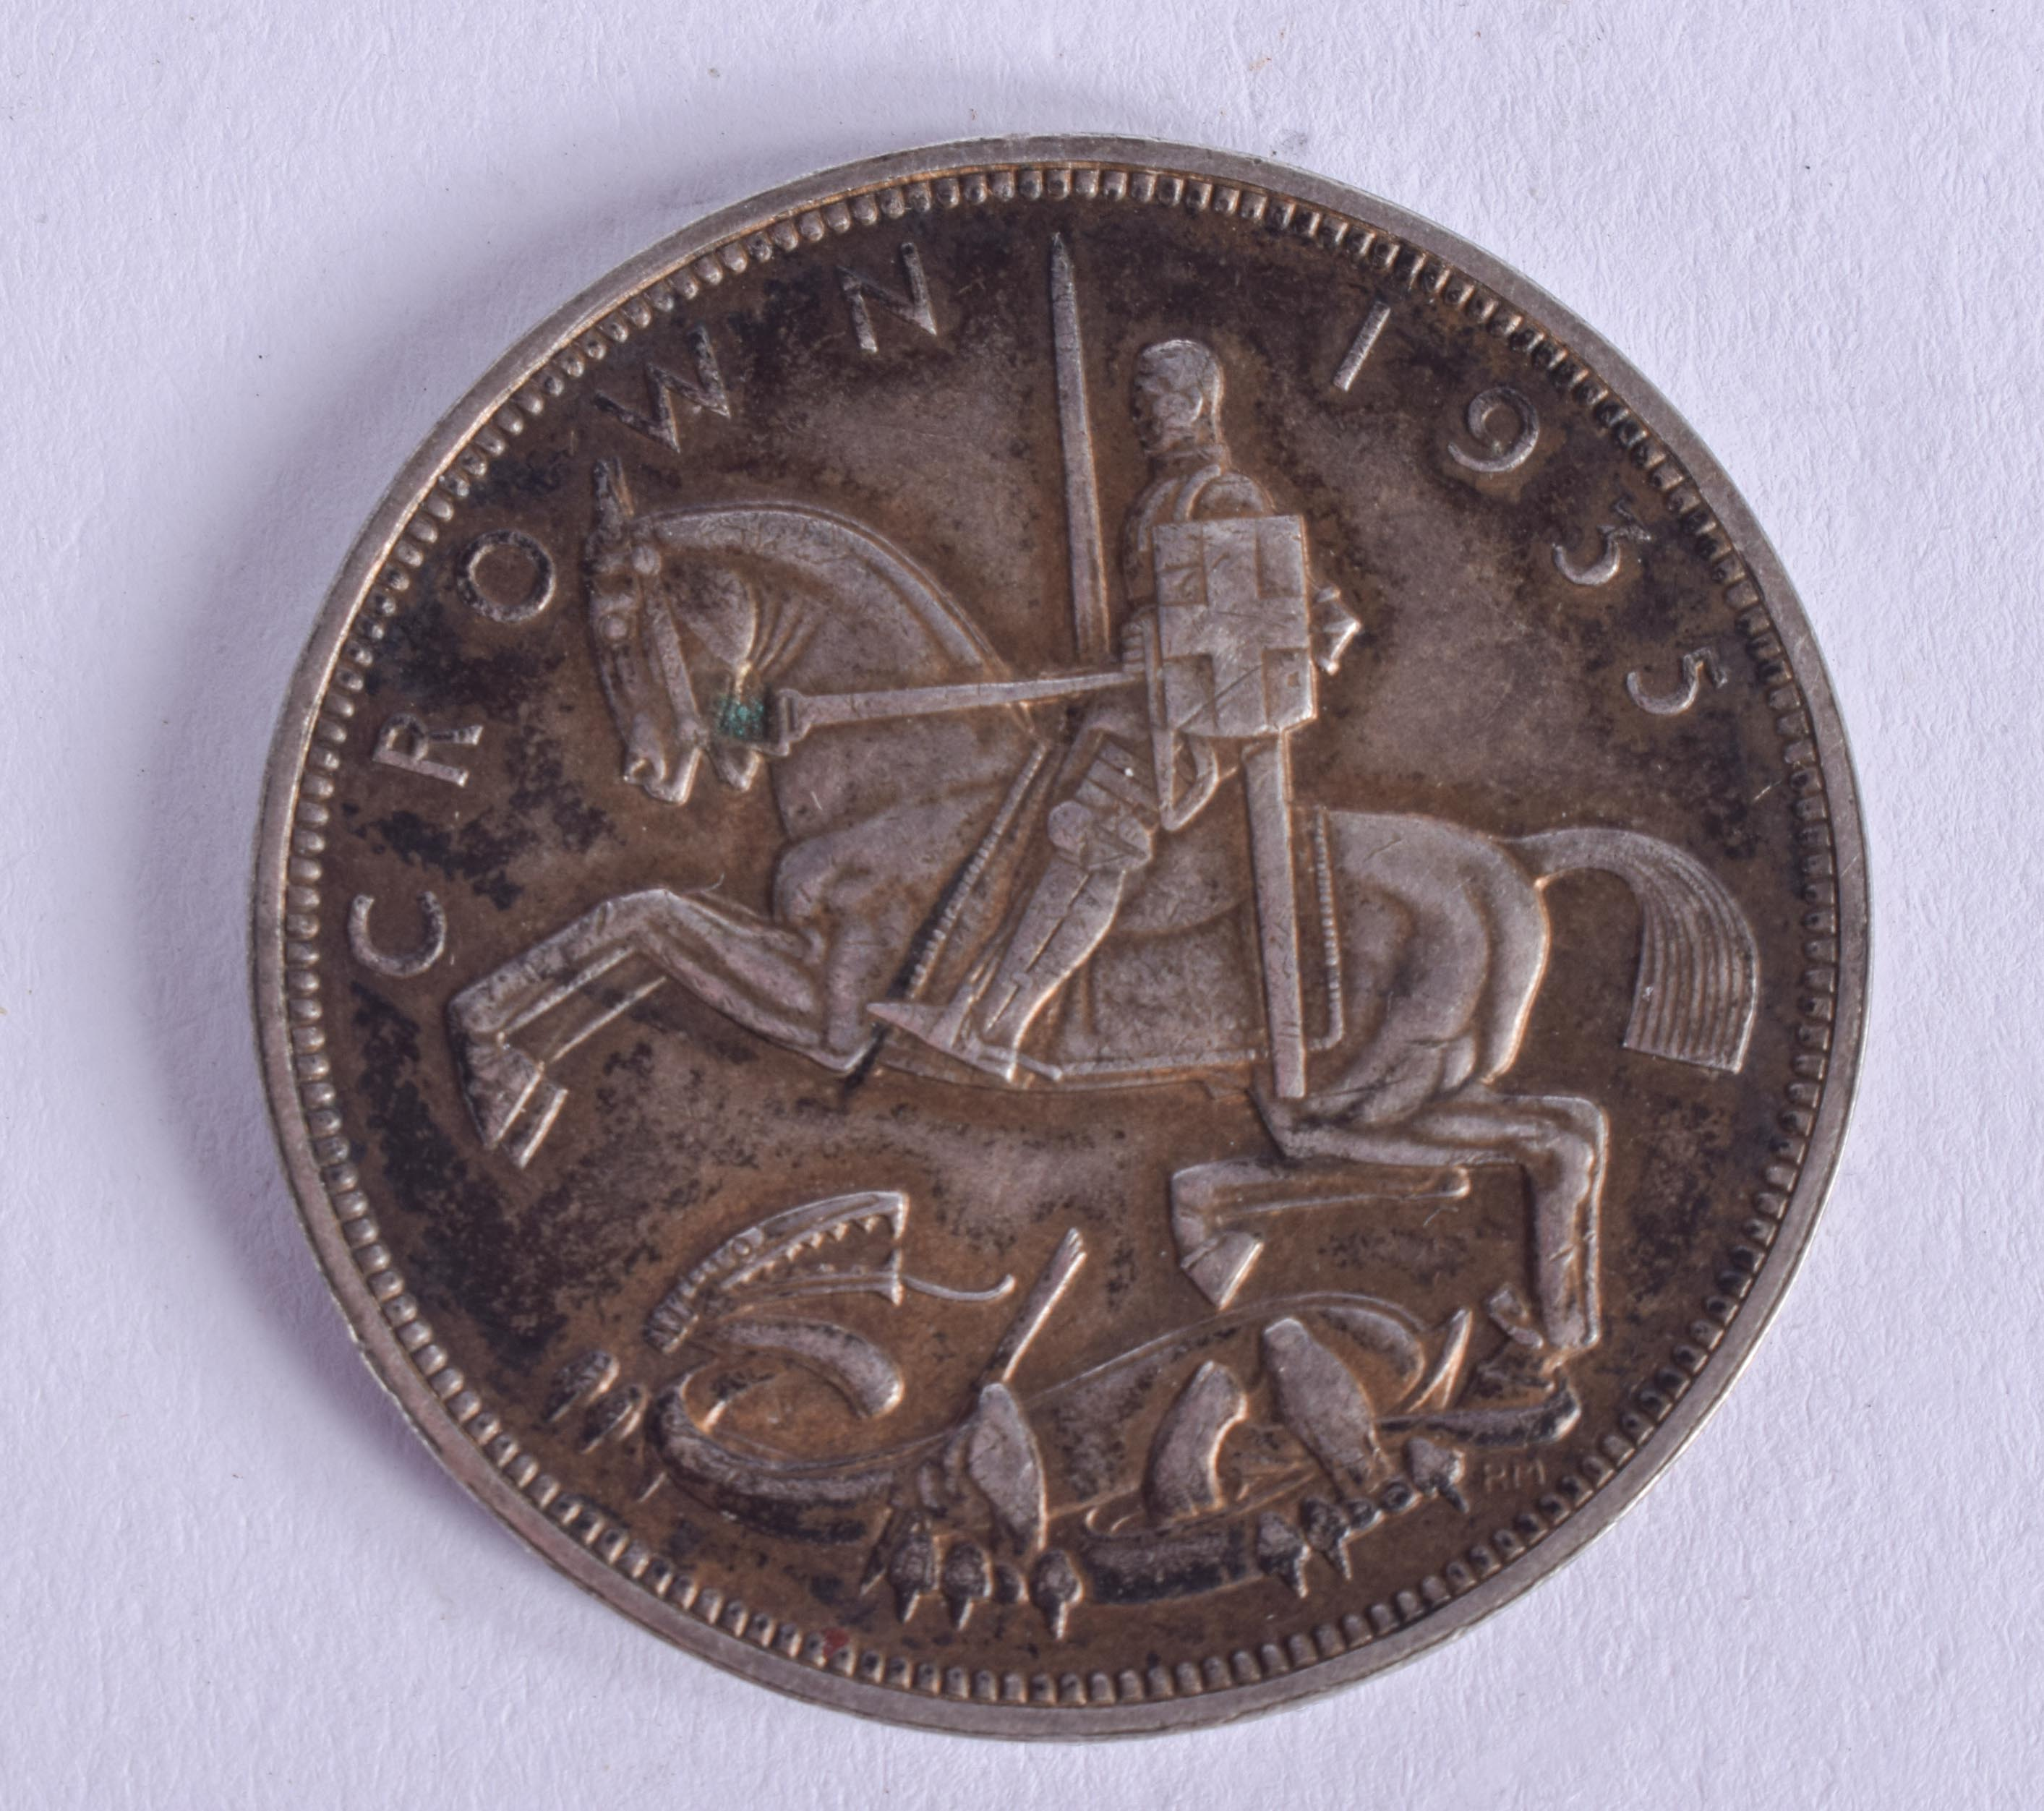 A GEORGE V 1935 SILVER CROWN. - Image 2 of 2